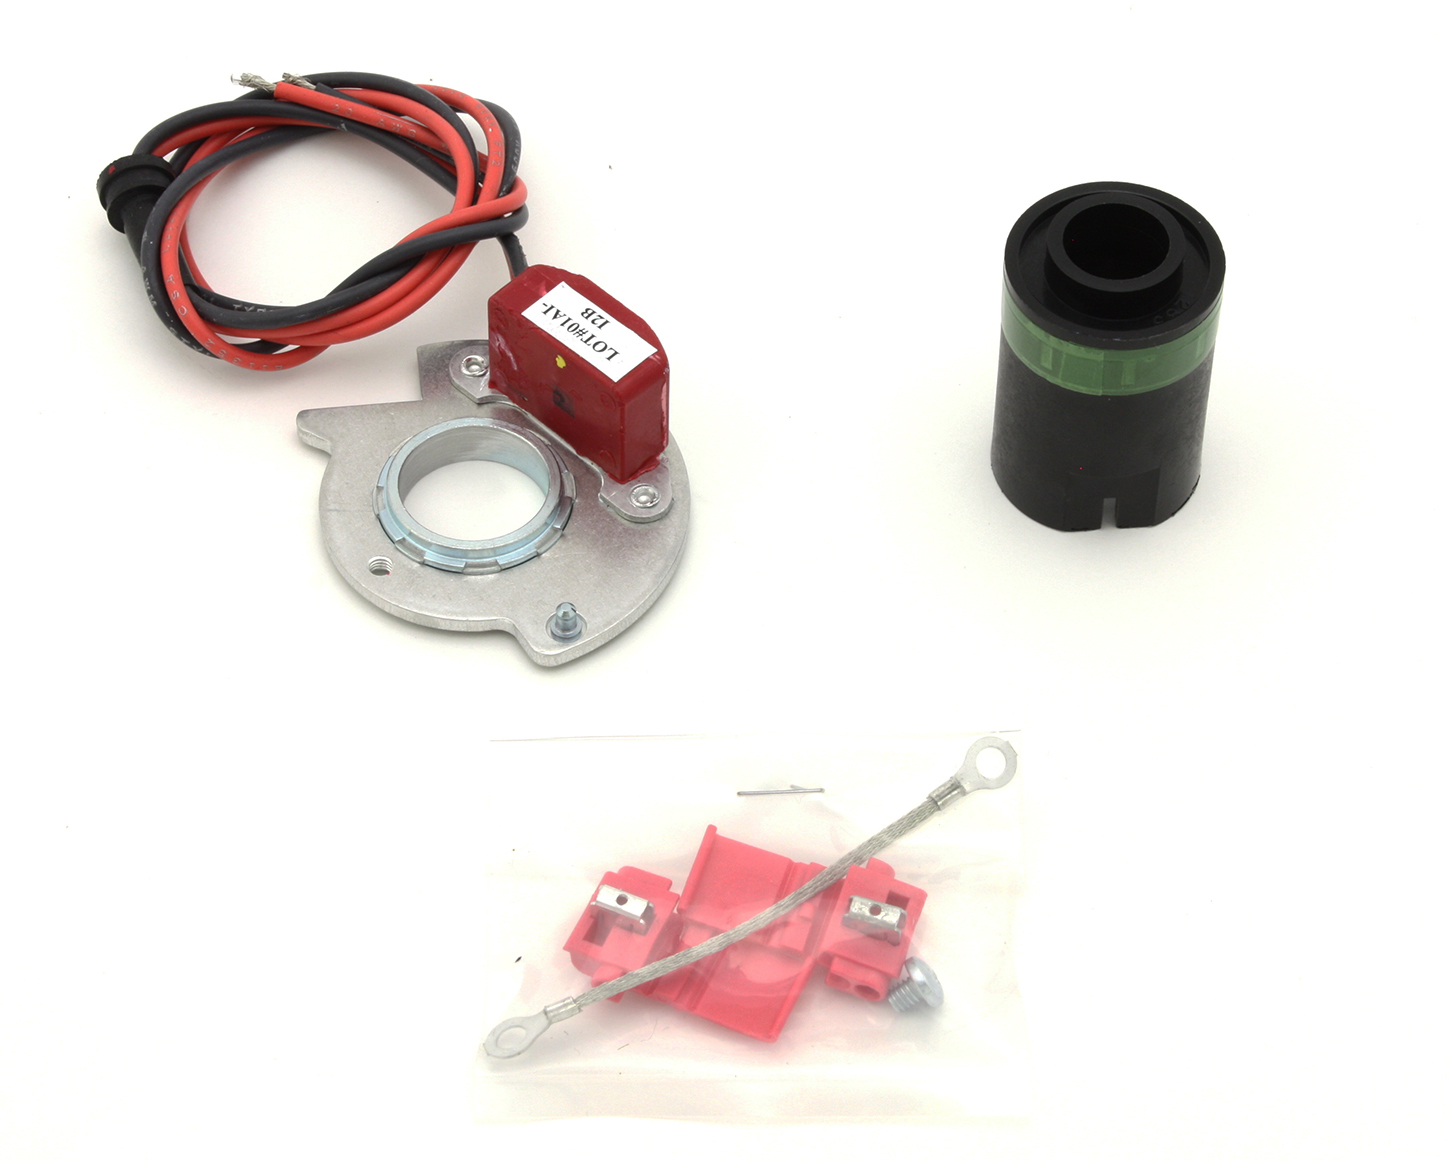 Pertronix Ignition 9FO-182 Ignition Conversion Kit, Ignitor II, Points to Electronic, Magnetic Trigger, Ford / Lincoln / Mercury V8, Kit